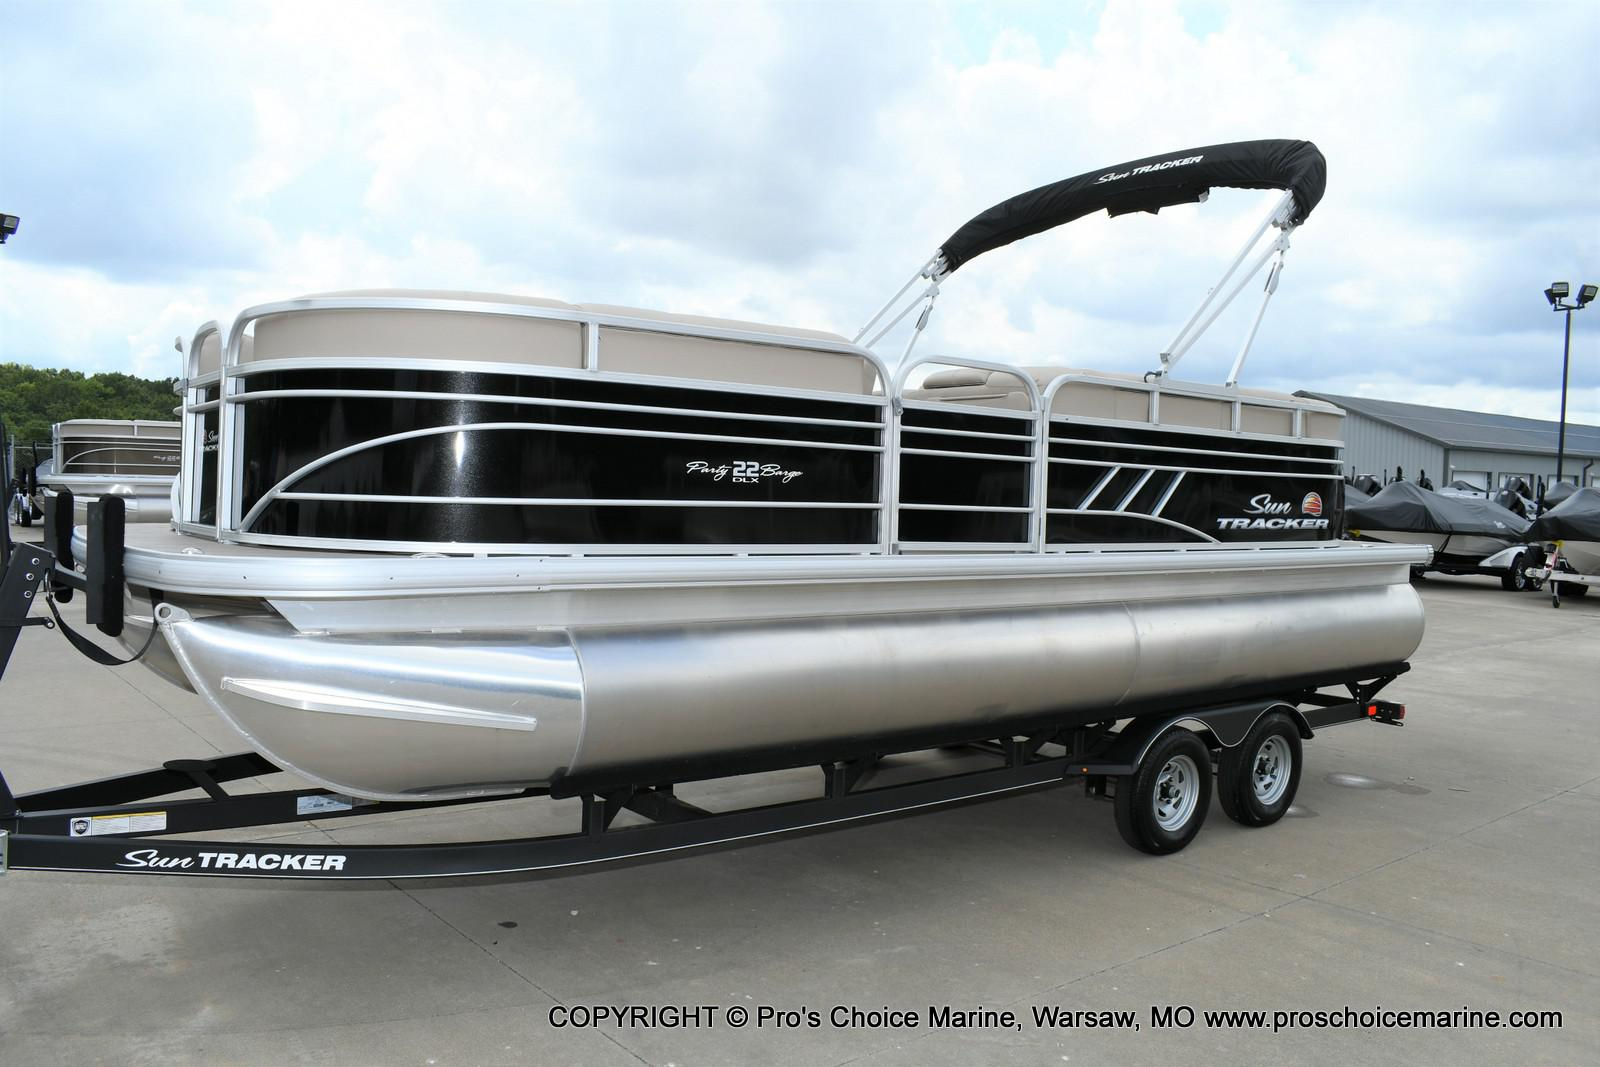 2020 Sun Tracker boat for sale, model of the boat is Party Barge 22 DLX & Image # 9 of 50